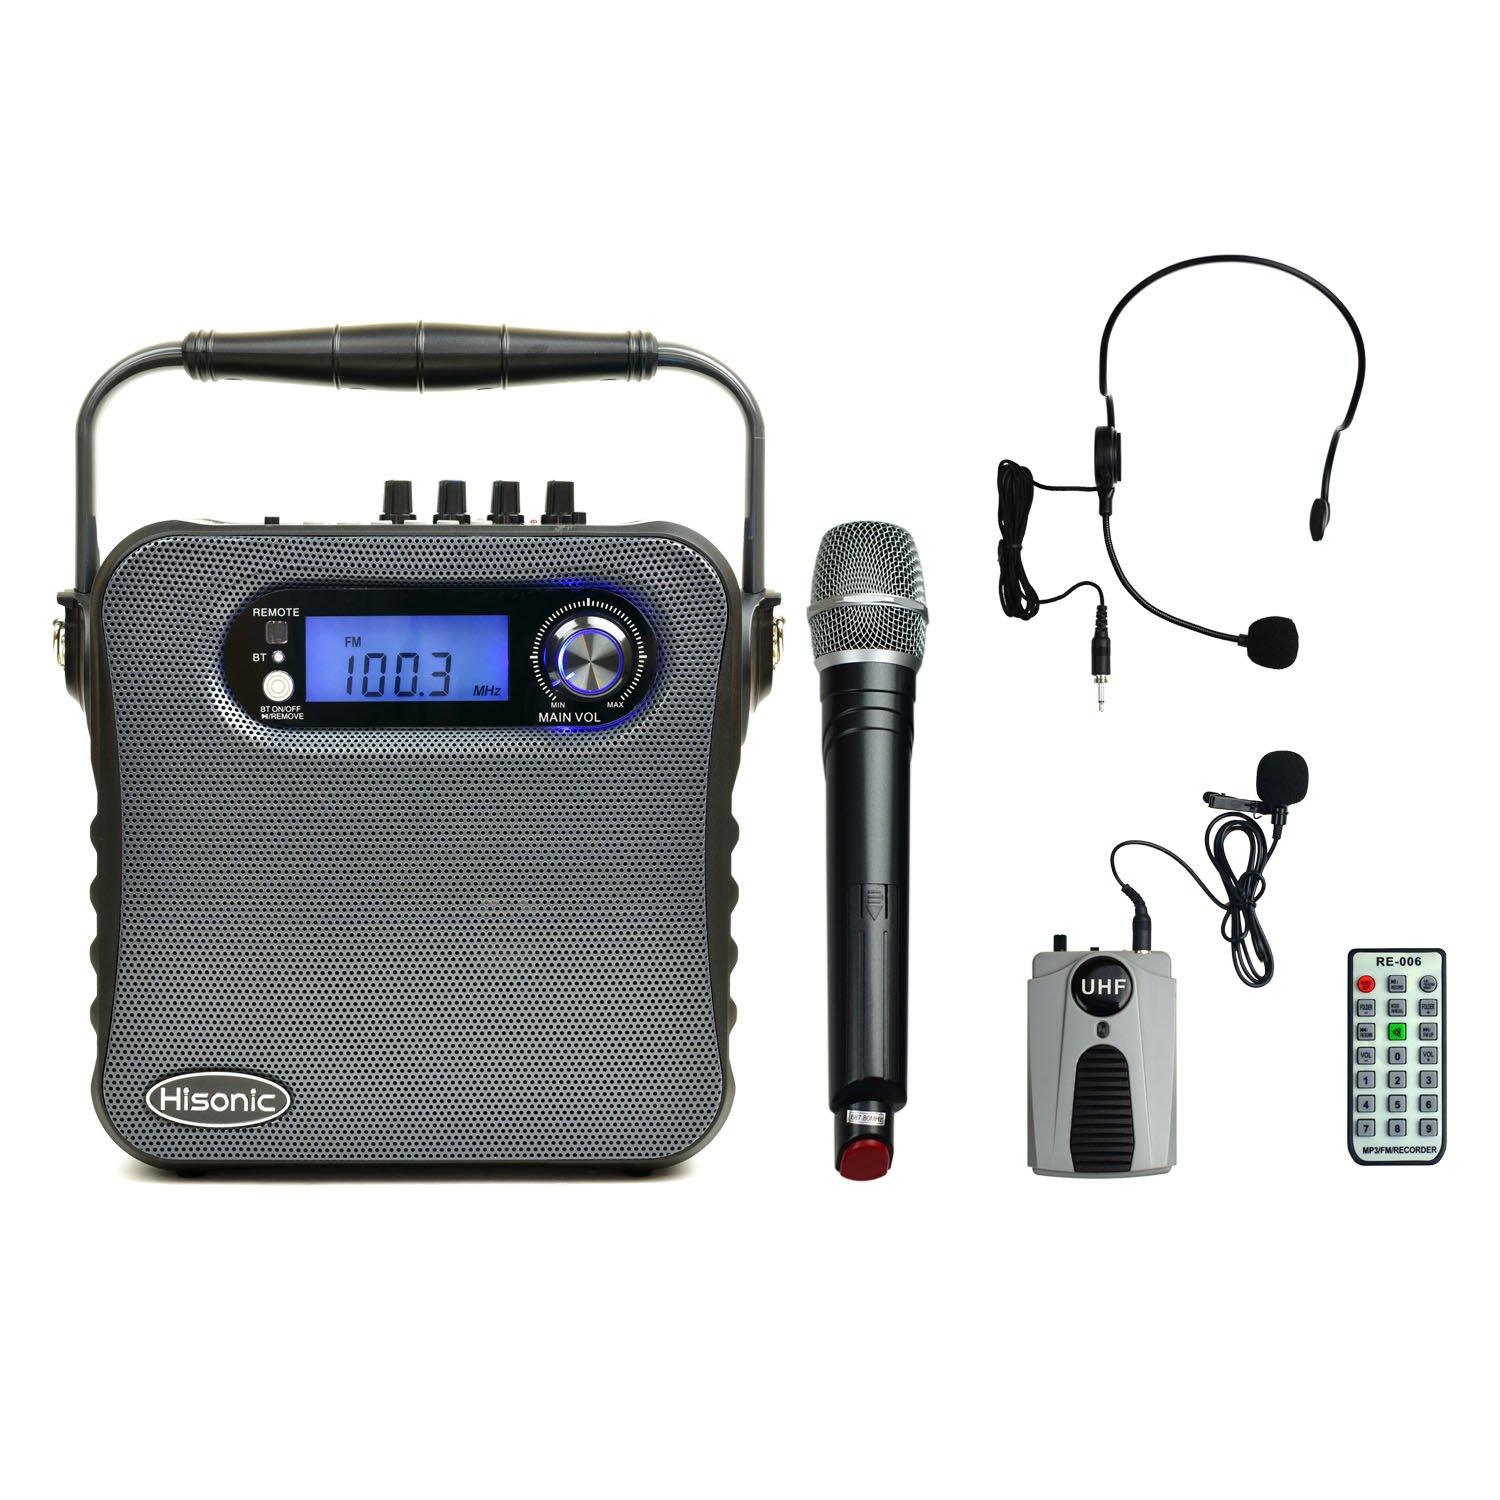 Hisonic HS488 UHF Dual Channel Wireless PA system with Bluetooth, MP3 Player, FM Radio and Voice Recorder, 90 Watts, Black Color with one handheld and one beltpack